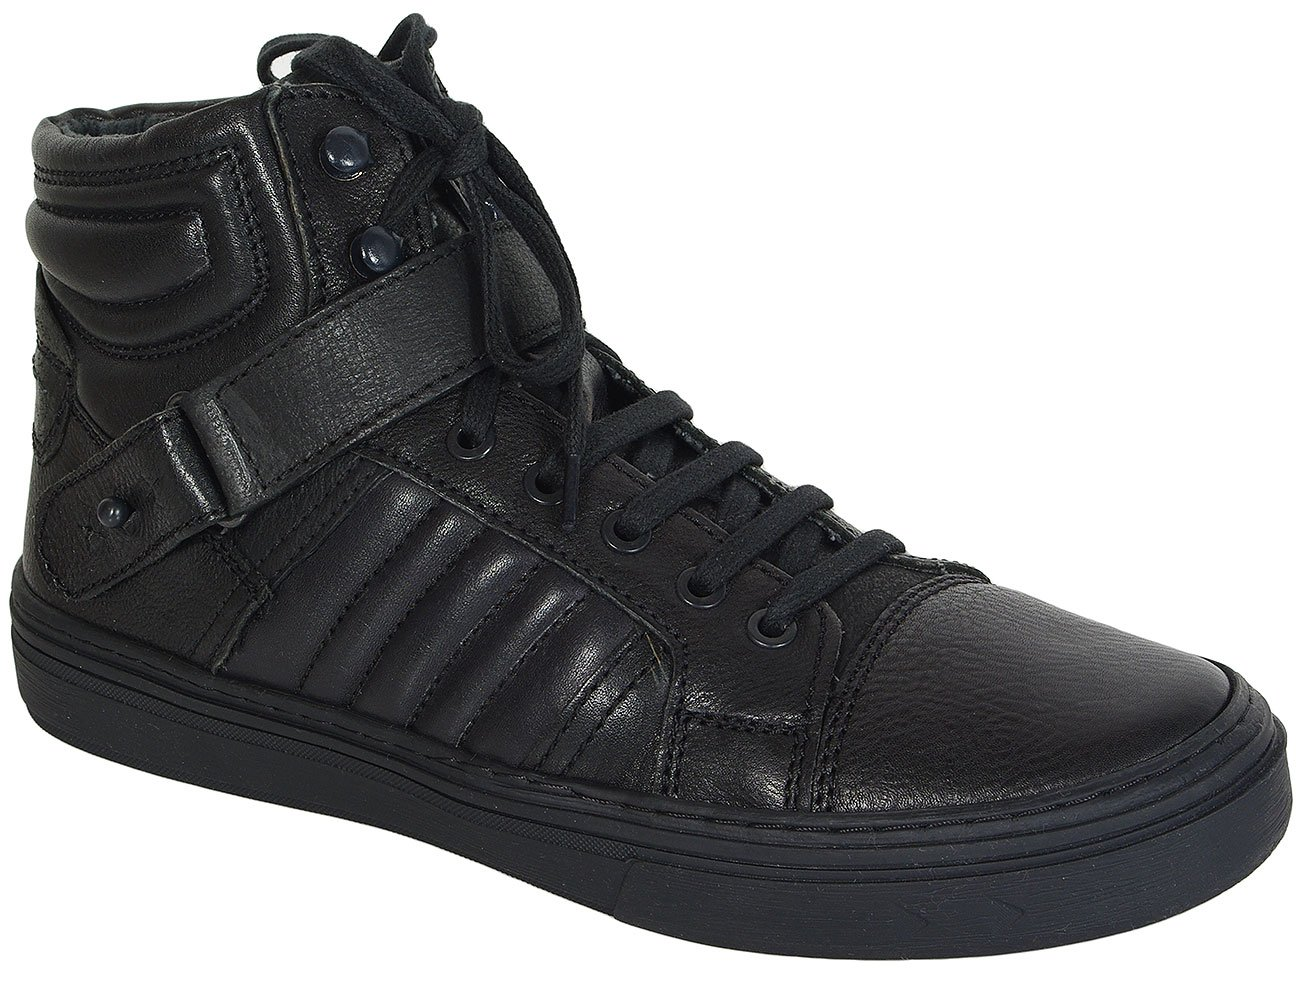 CANGURO BY FREEMOOD A015 VACCHETTA DELAVE'-TE NERO SNEAKERS